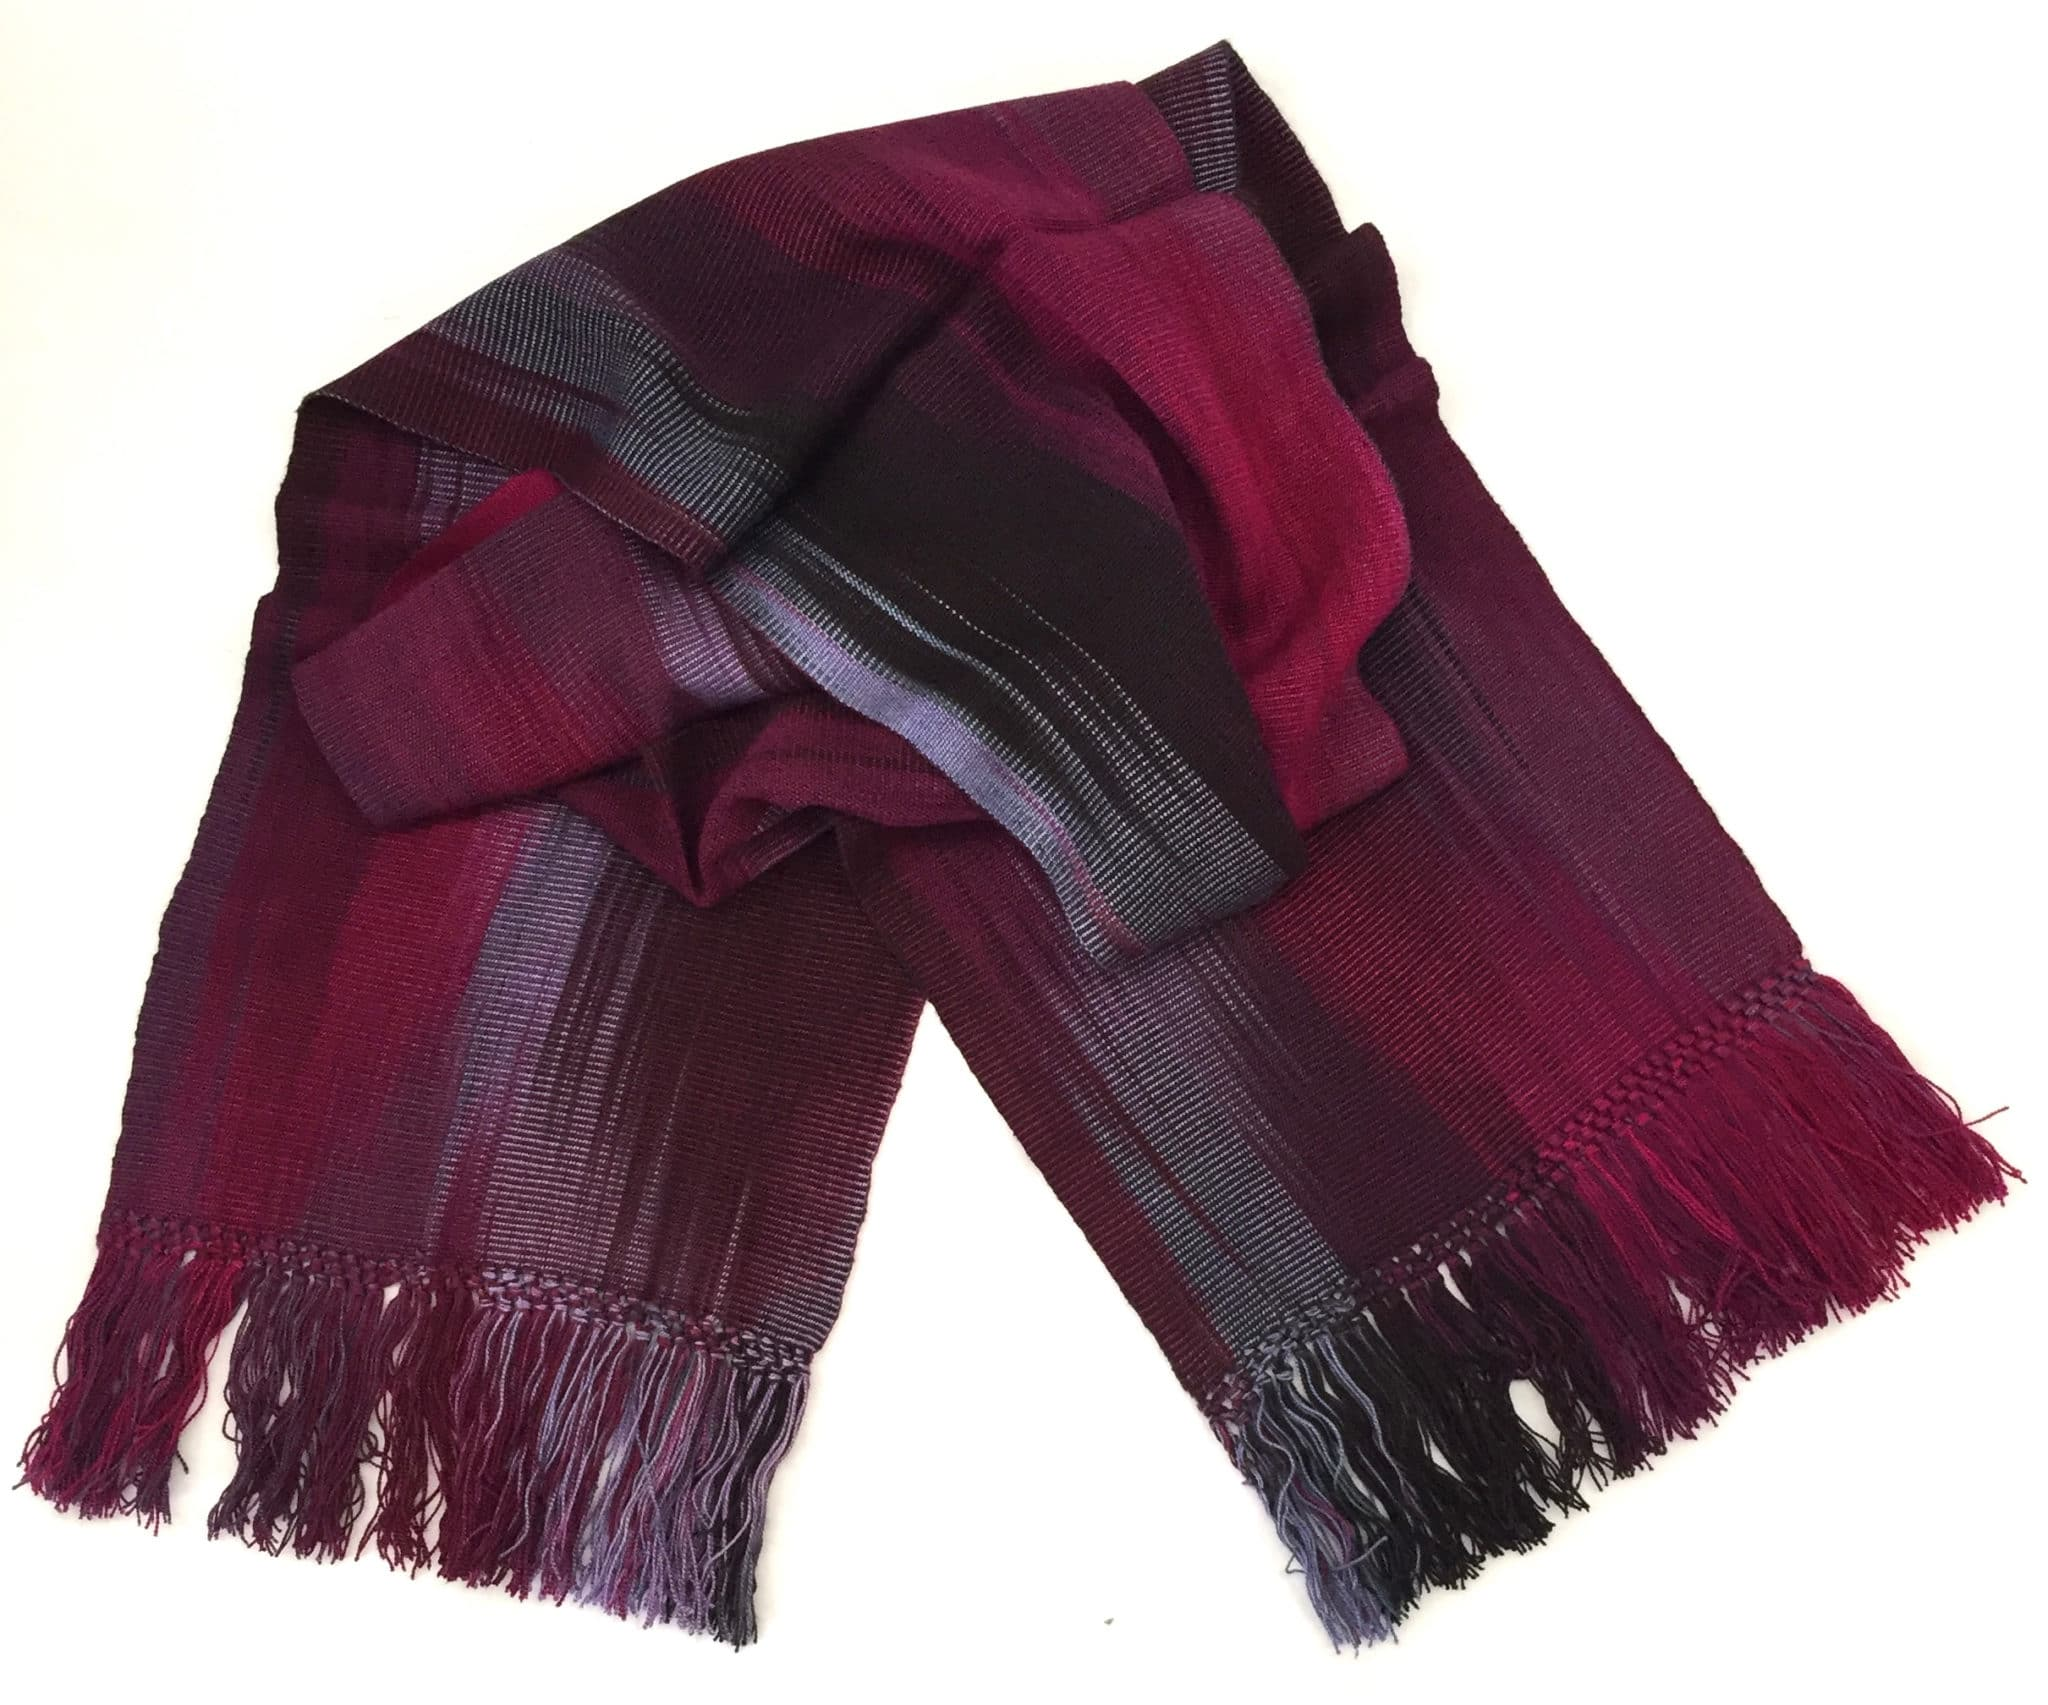 Magenta, Light Violet, Black - Lightweight Bamboo Handwoven Scarf 8 x 68